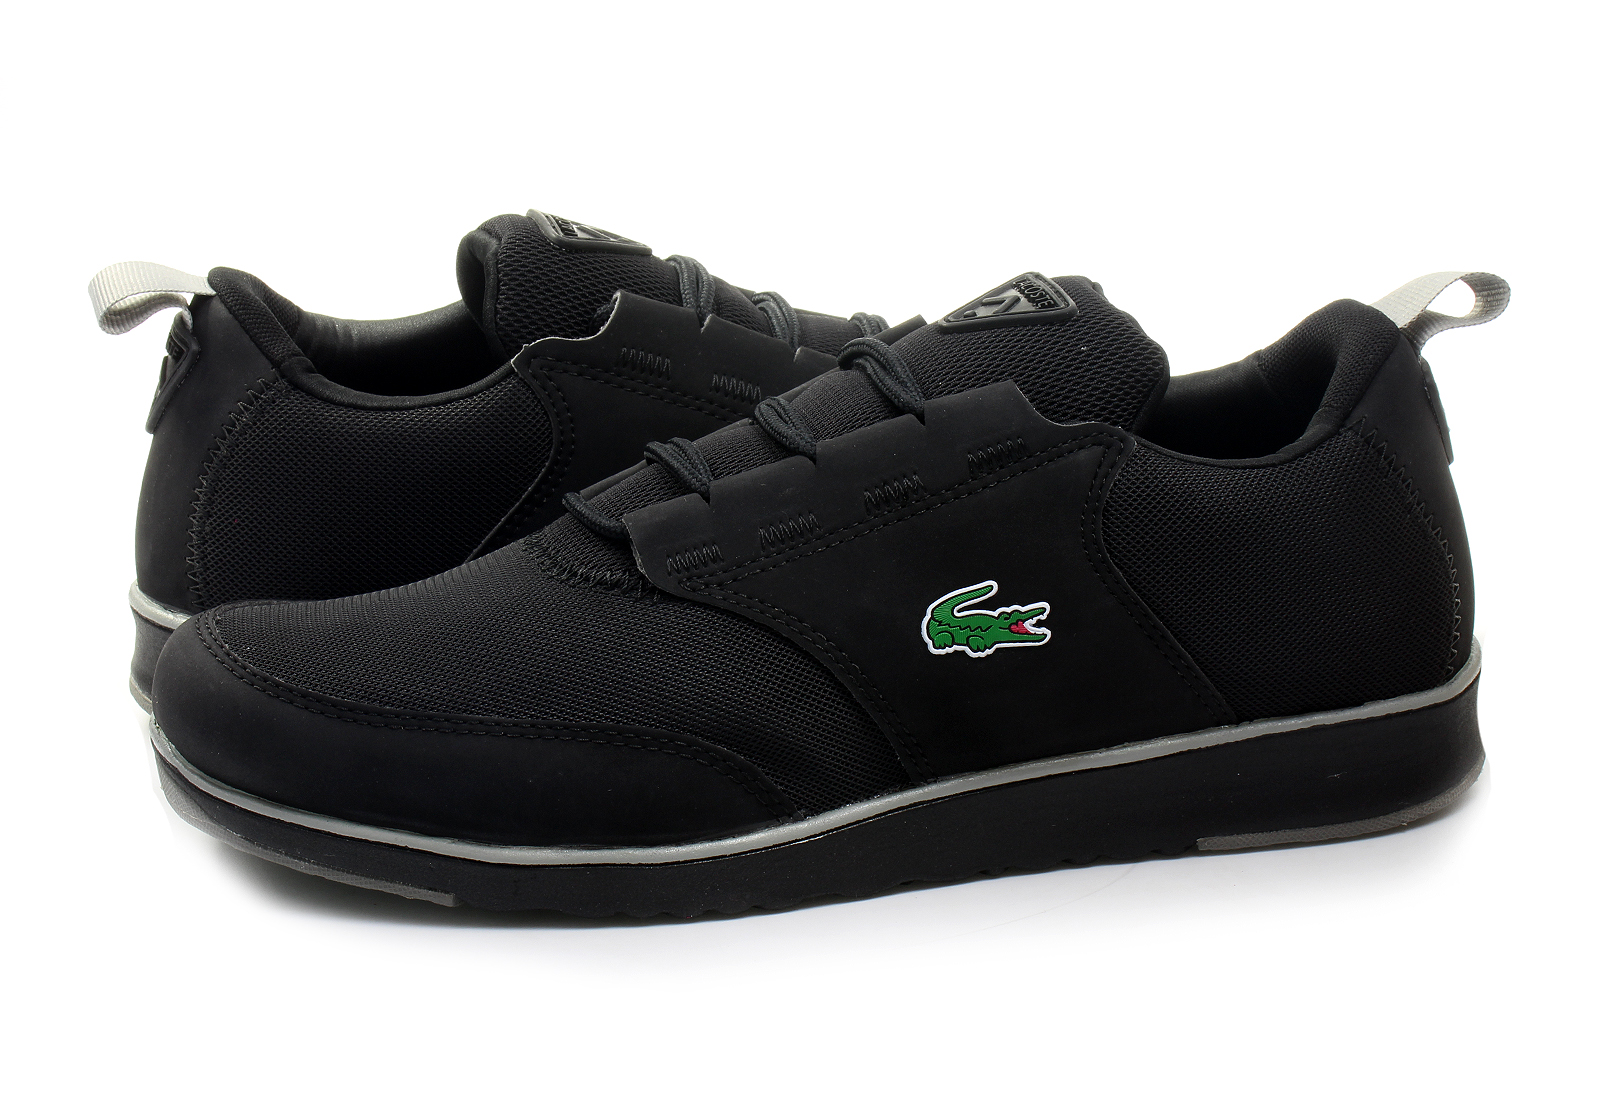 b6464021c Lacoste Shoes - L.ight 116 1 - 161spm0024-024 - Online shop for ...